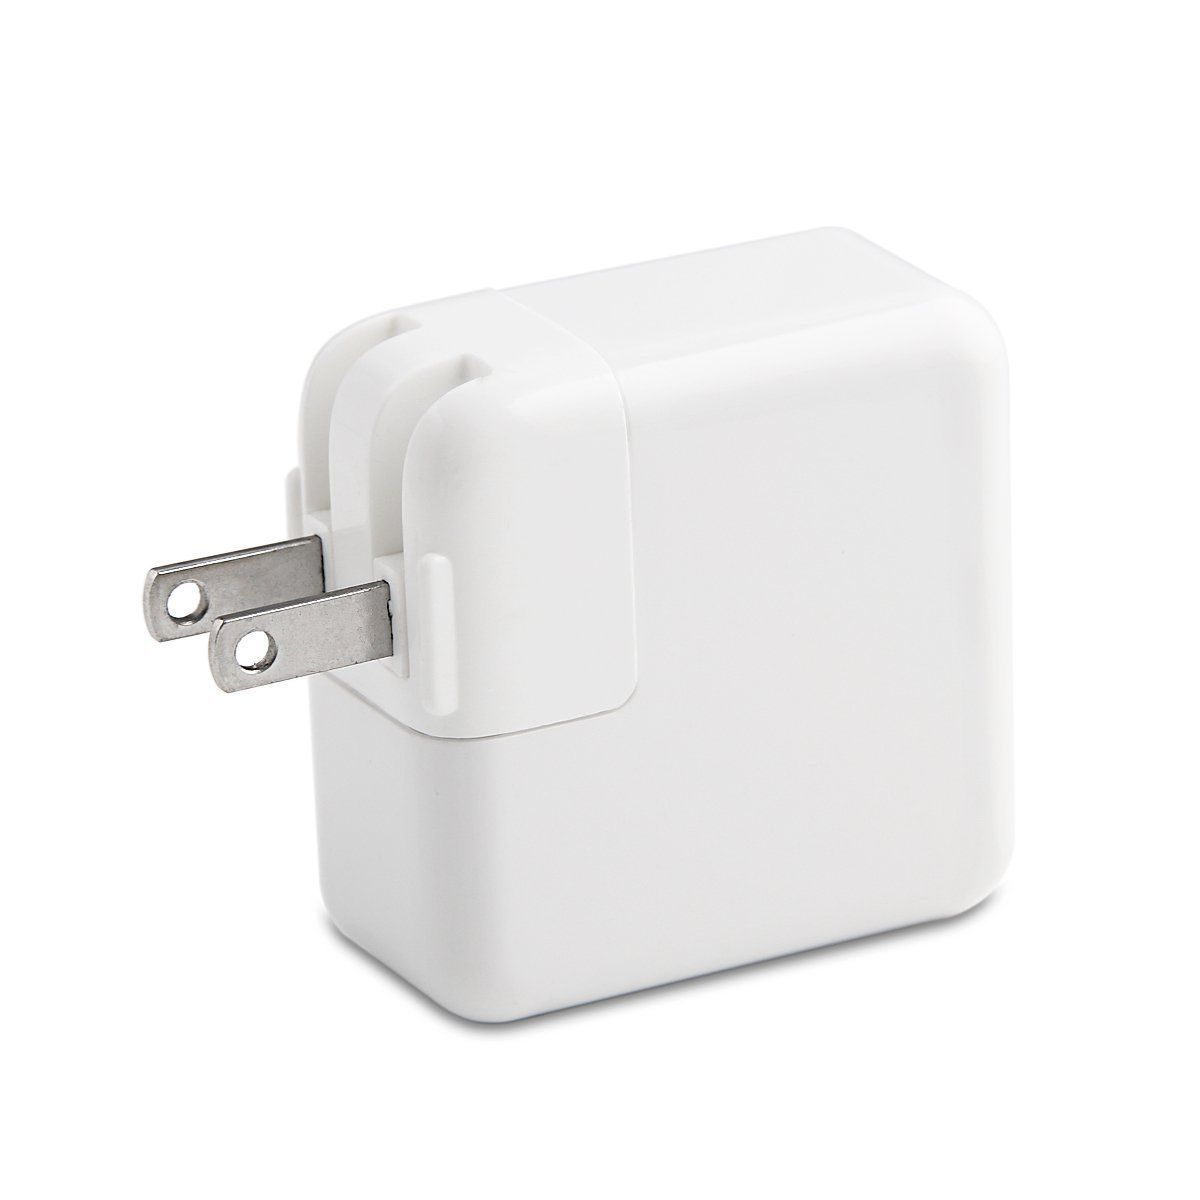 87W USB-C Power Adapter and USB-C 3.1 Charge Cable